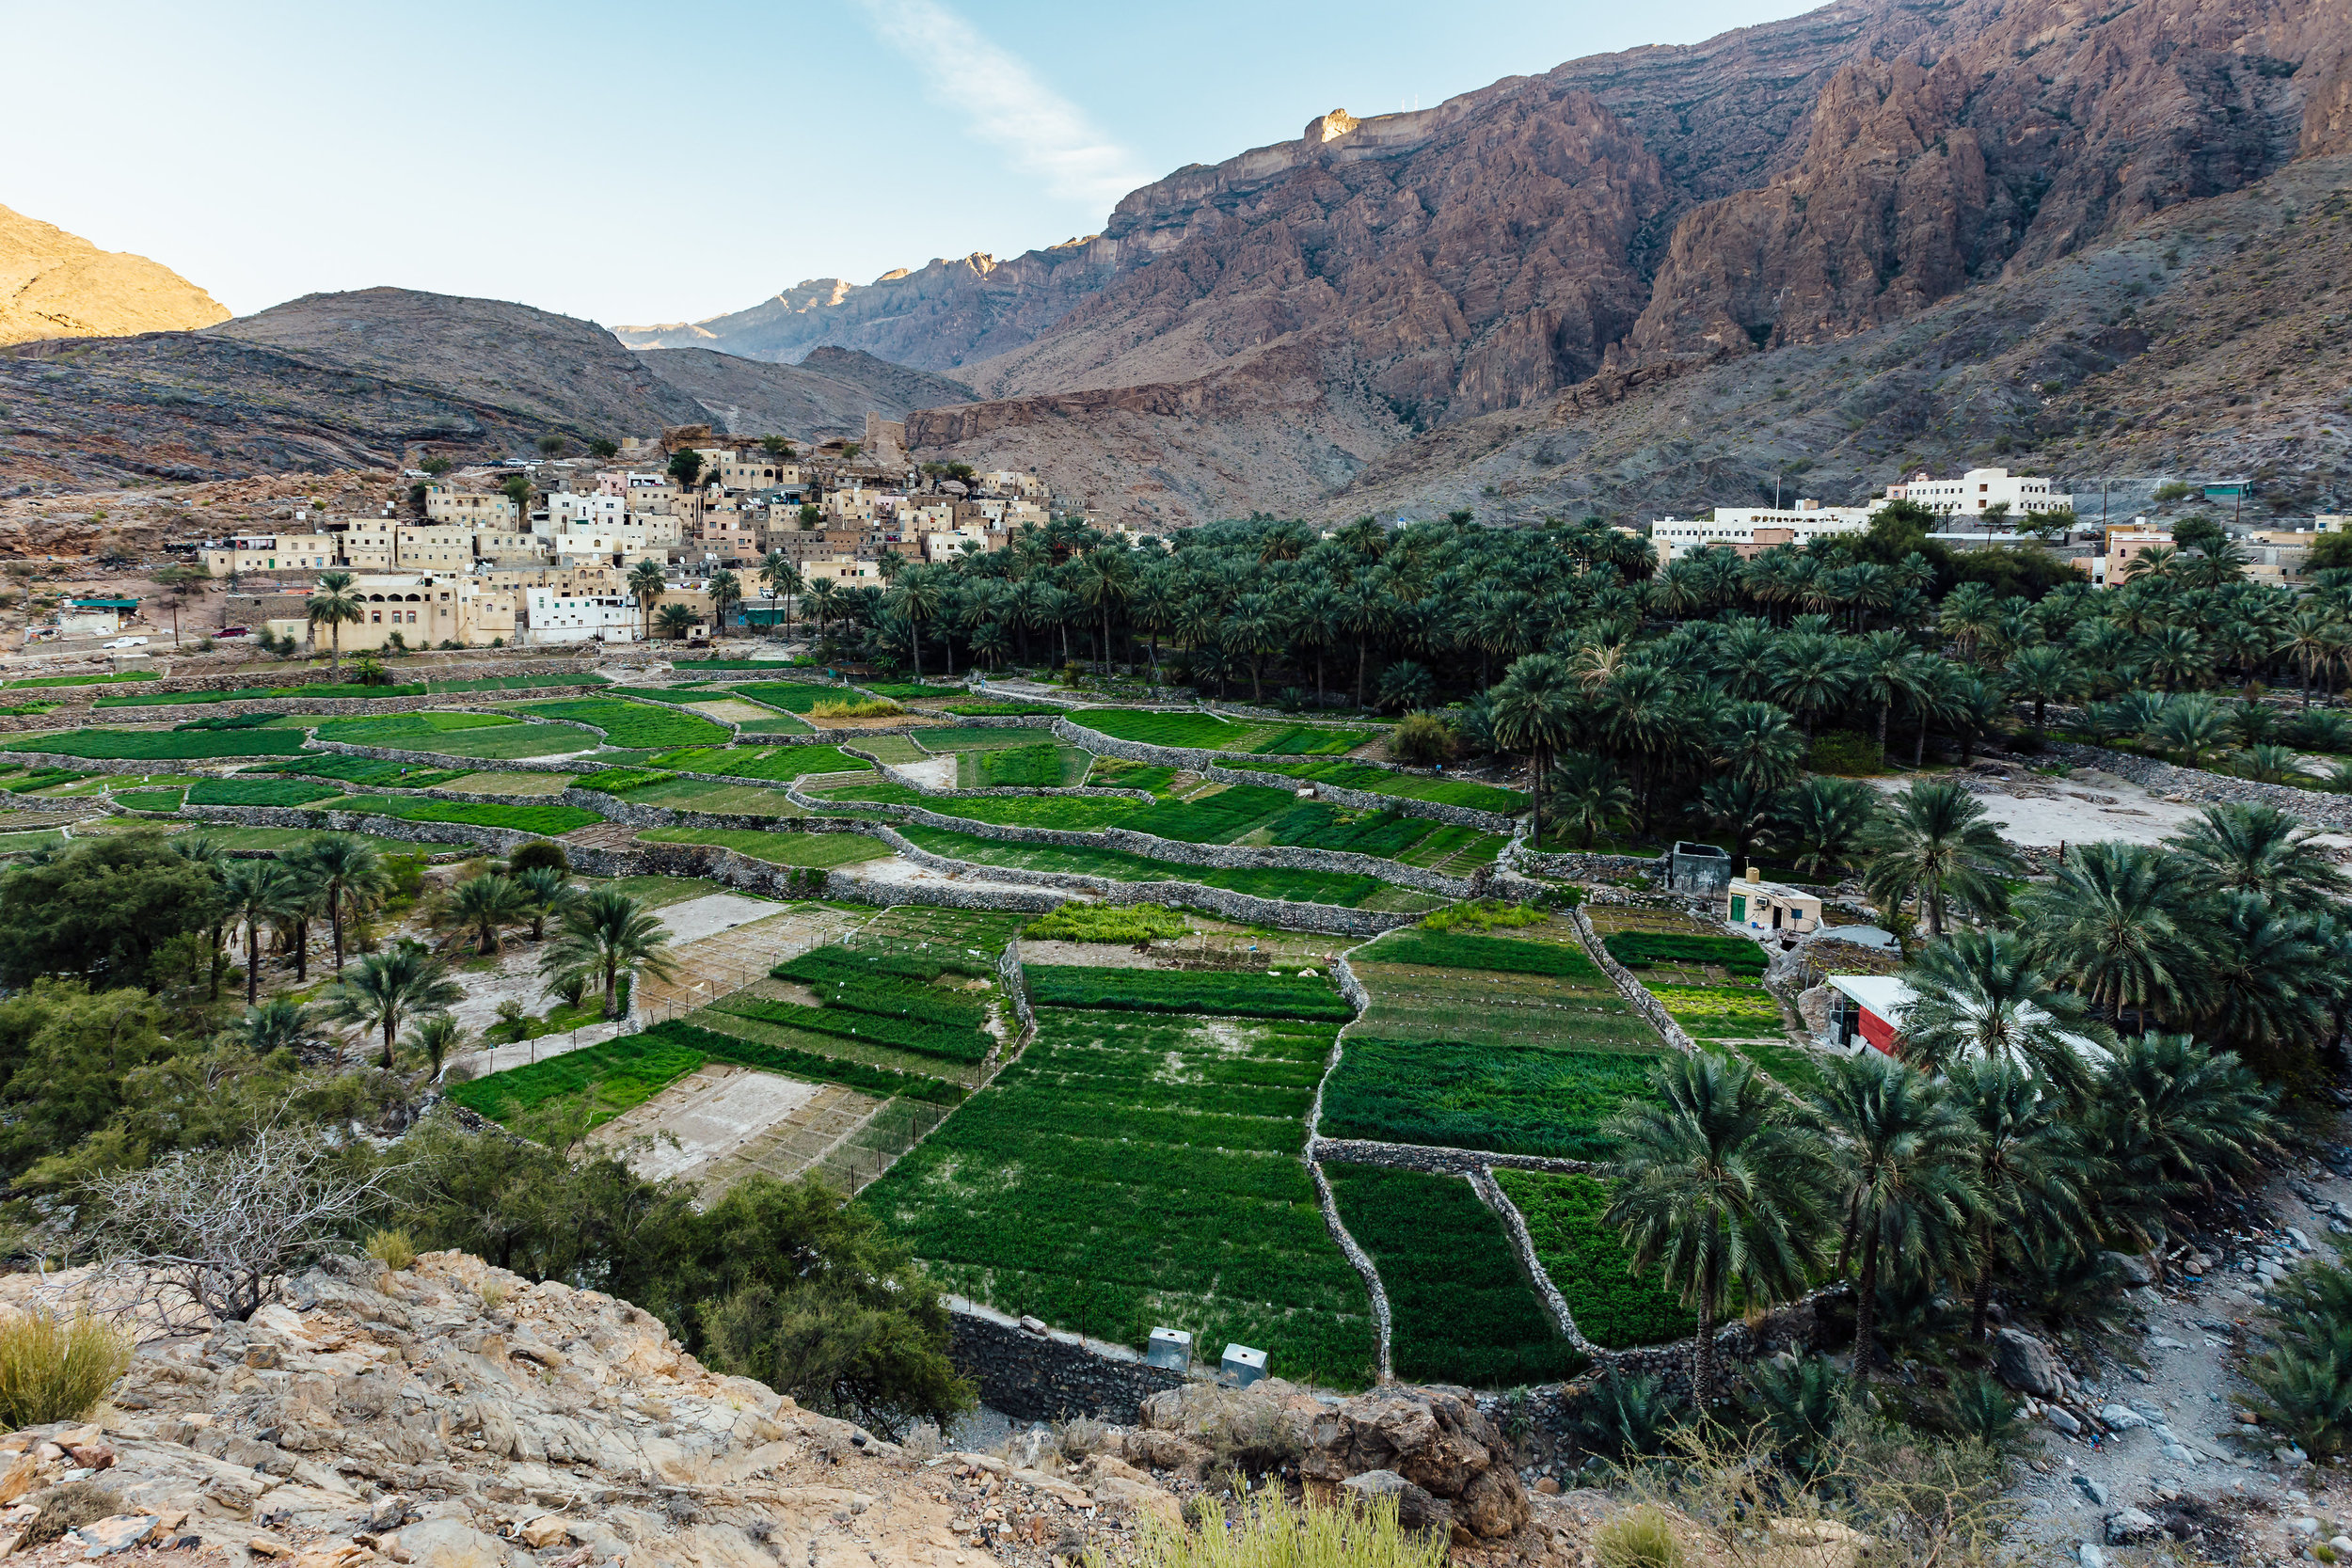 The village of Bilad Sayt sits in the shadow of the Hajar mountains, brimming with crops.